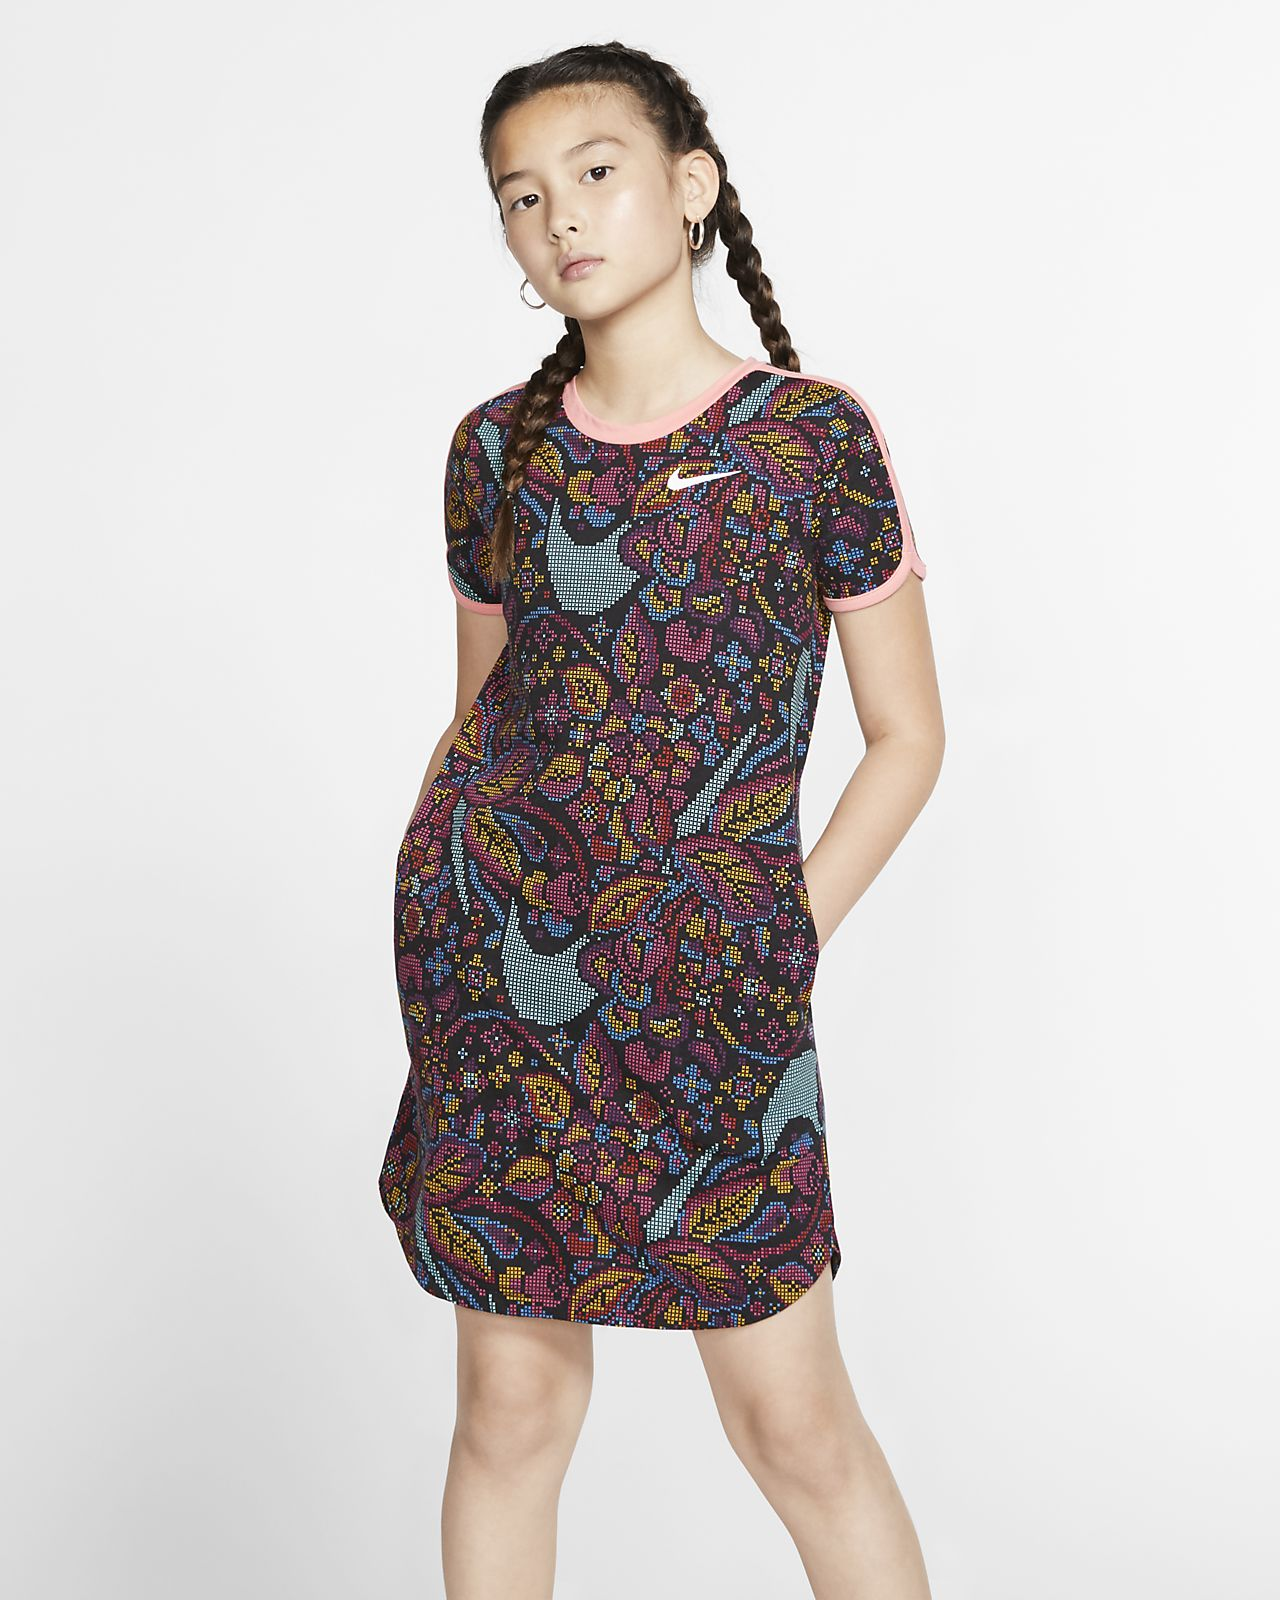 Nike Sportswear Girls' Swoosh Dress